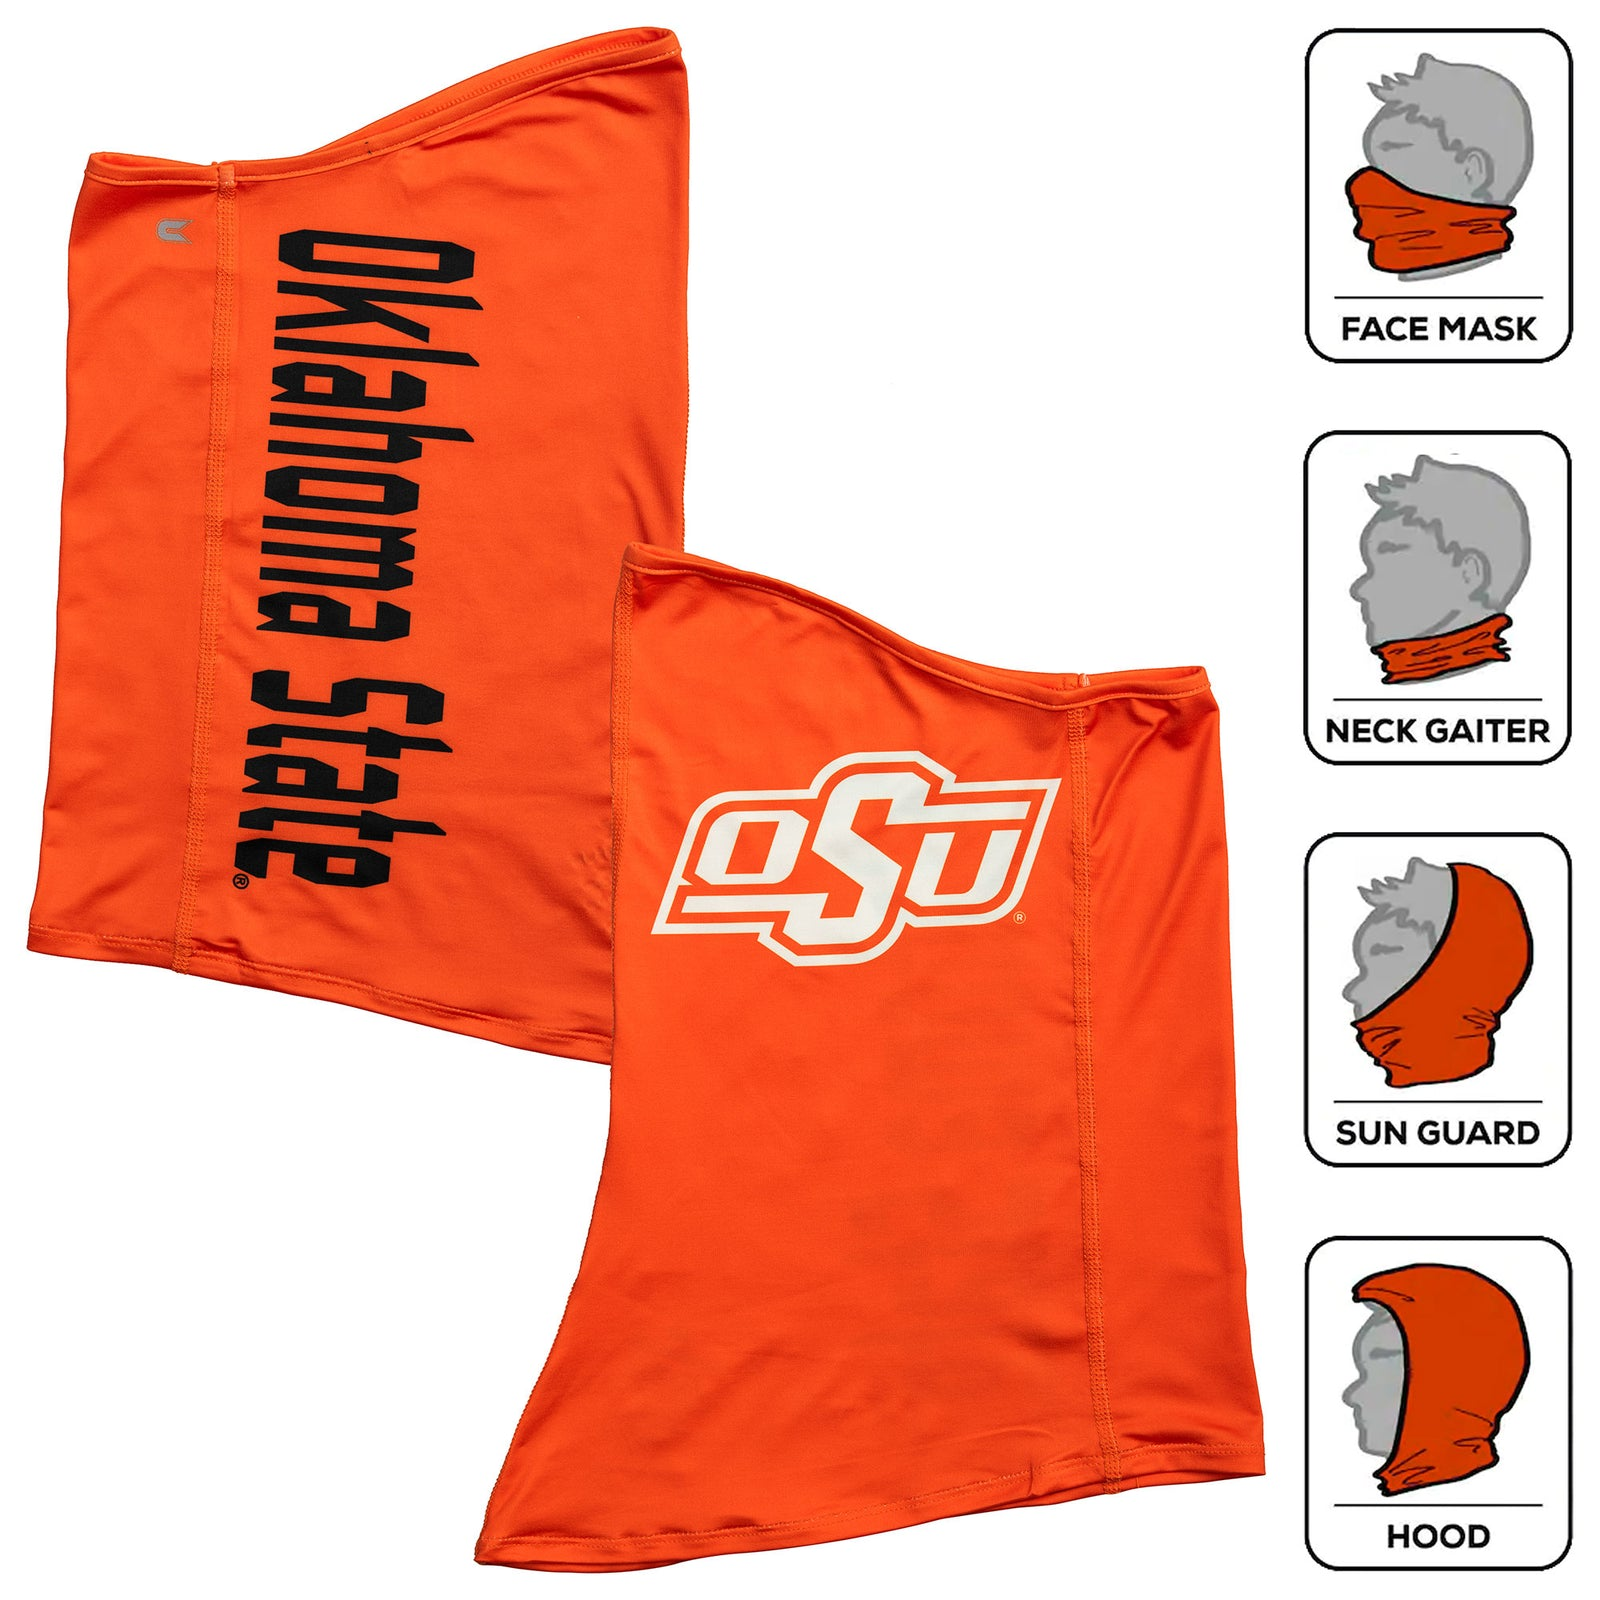 OSU SOLID COLOR NECK GAITER - OSUSCNG